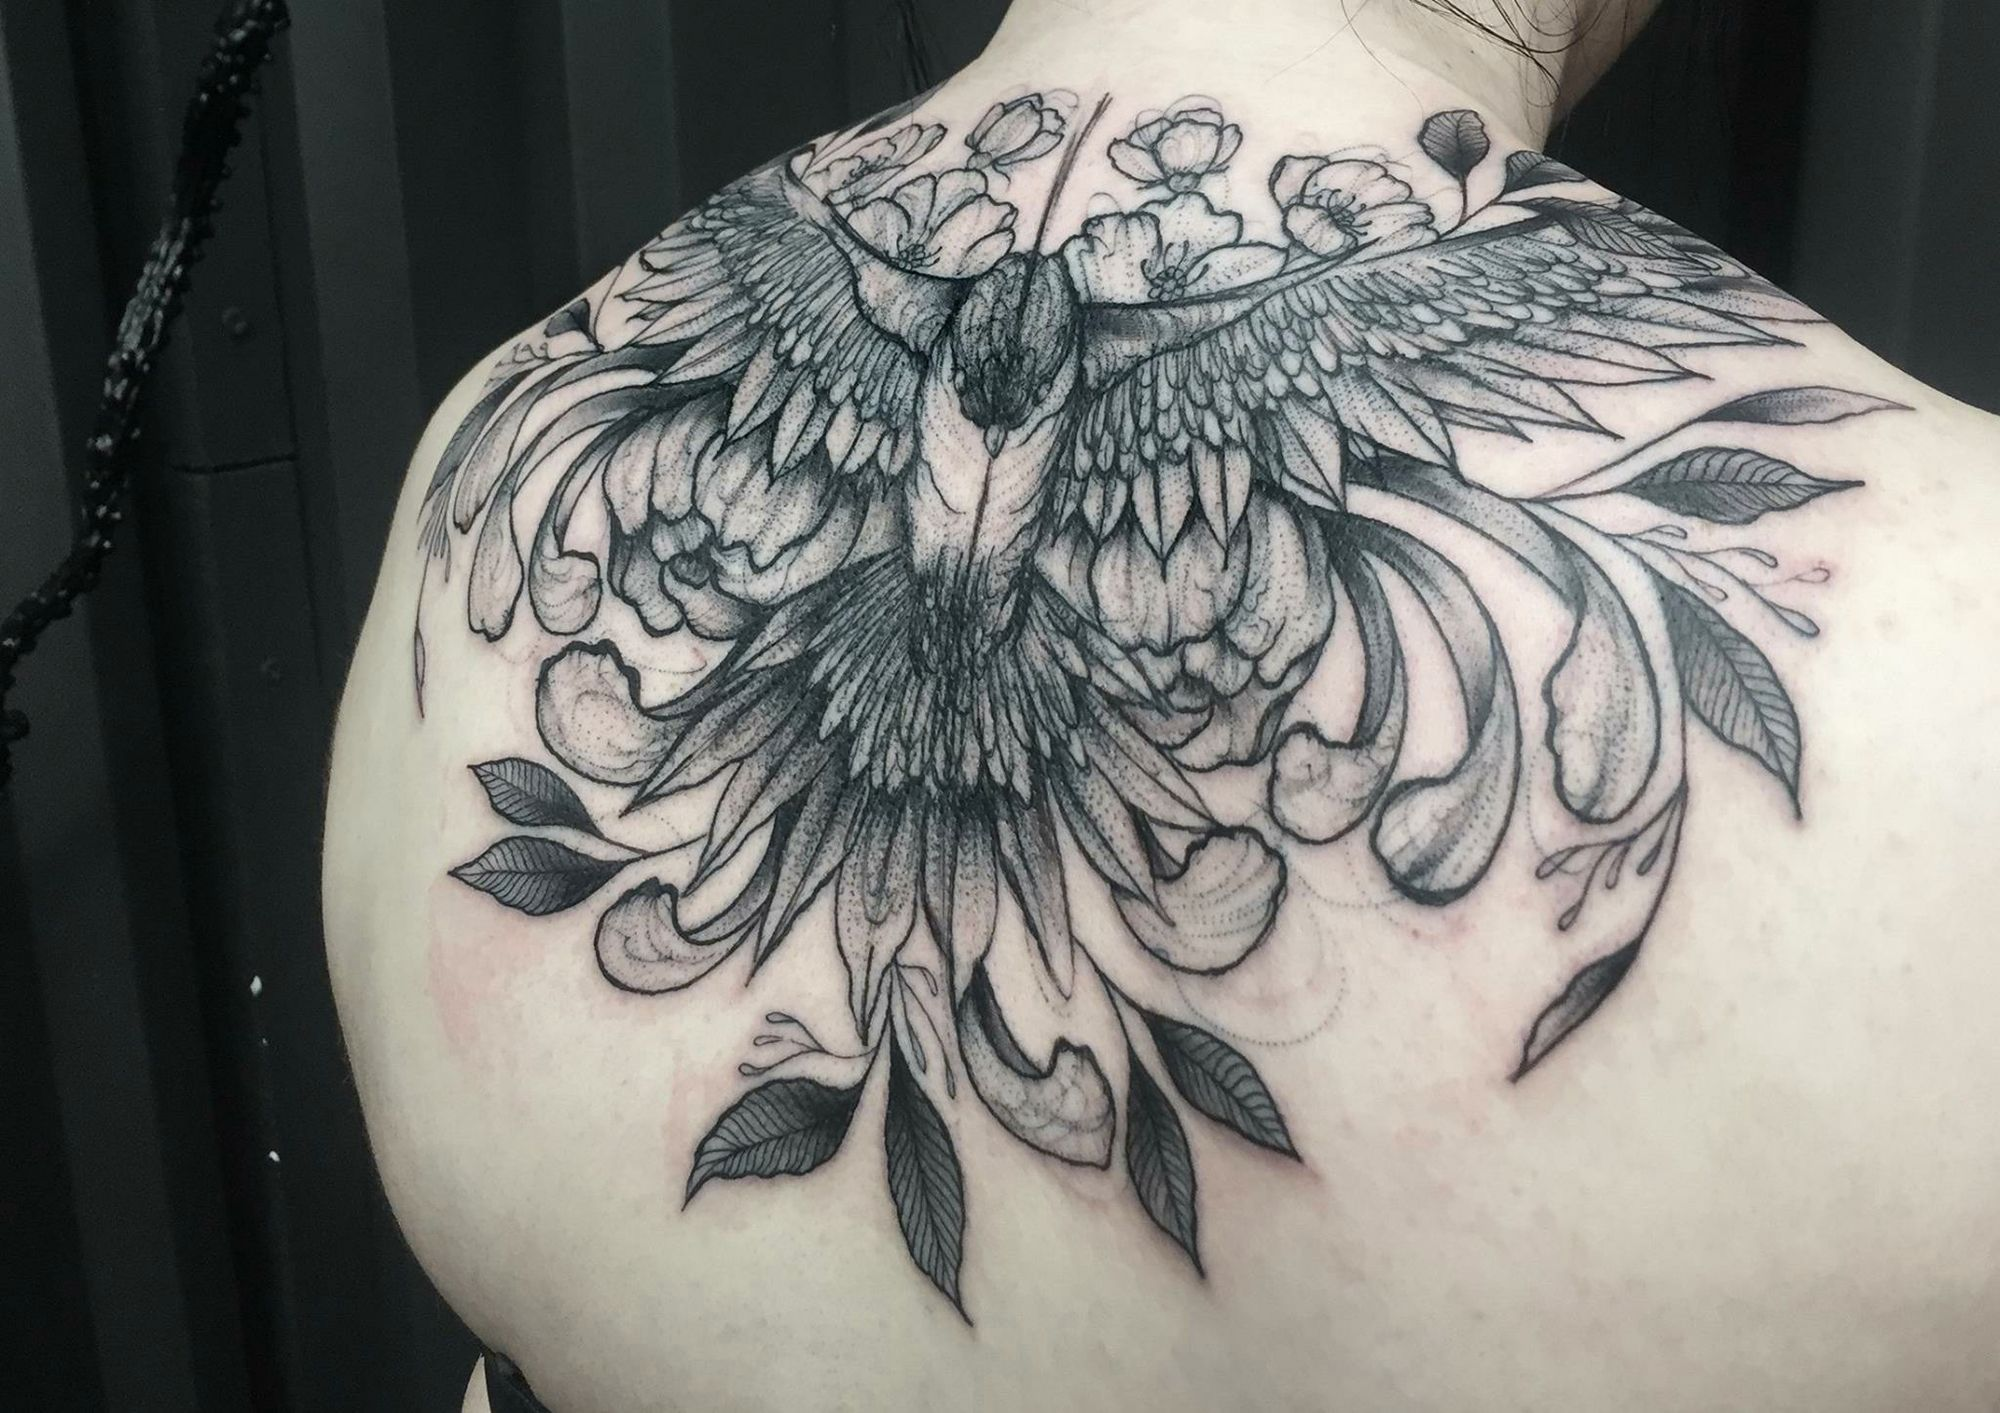 Tattooist Antonella Bubble is Inspired by the Warmth of Nature